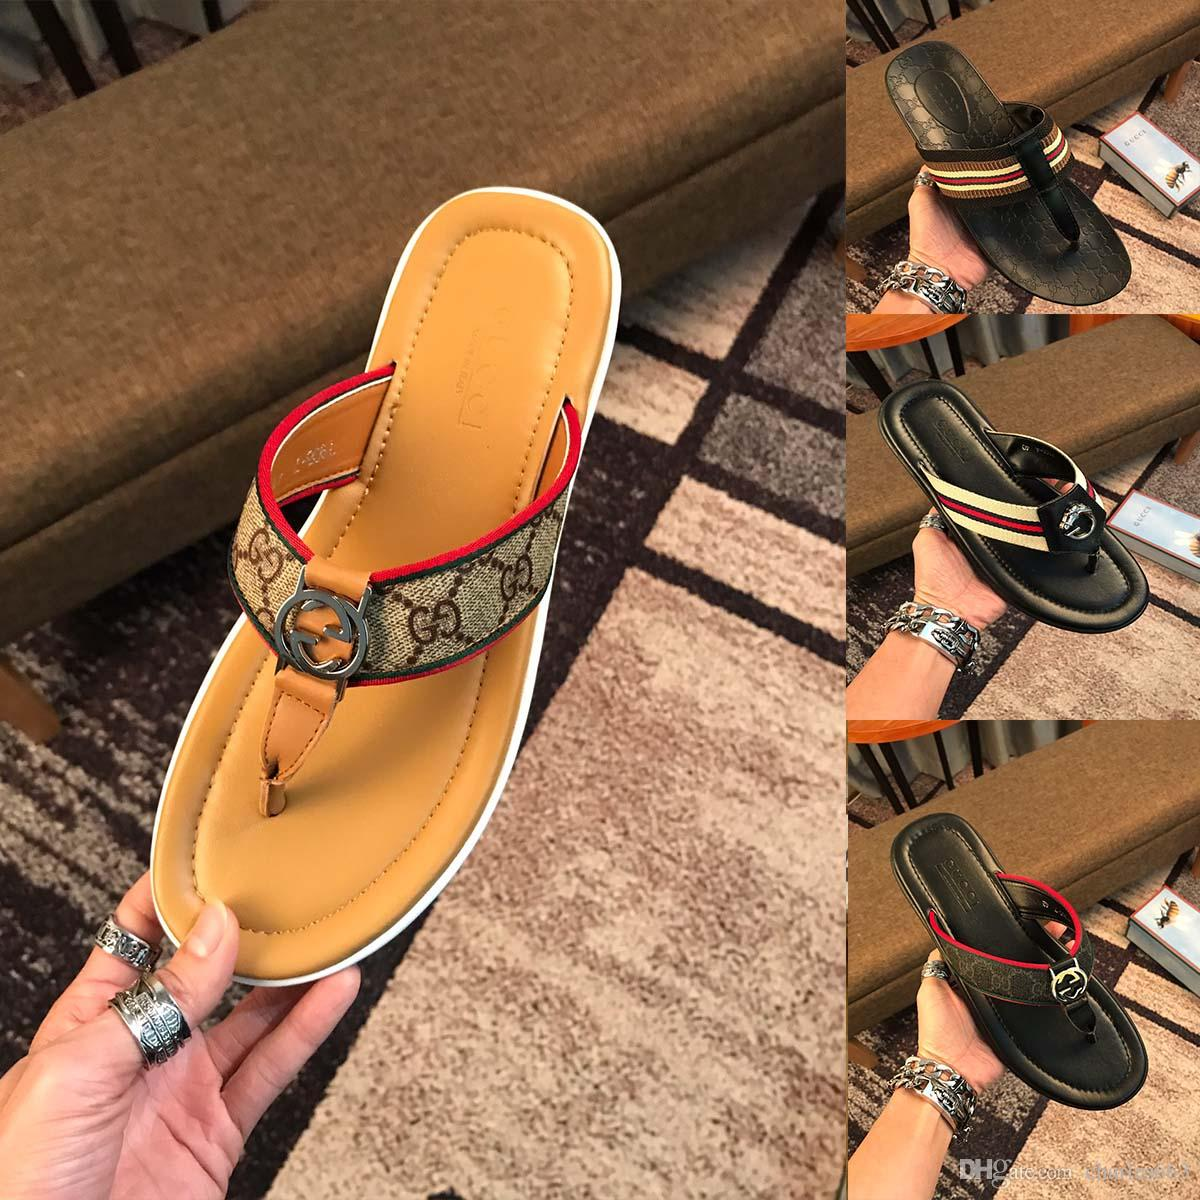 f6c2f2da51e116 2019 Brand Luxury Summer Slippers For Men Flip Flops High Quality Beach  Sandals Non Slip Men Slippers Casual Outdoor Shoes Work Boots Wide Calf  Boots From ...